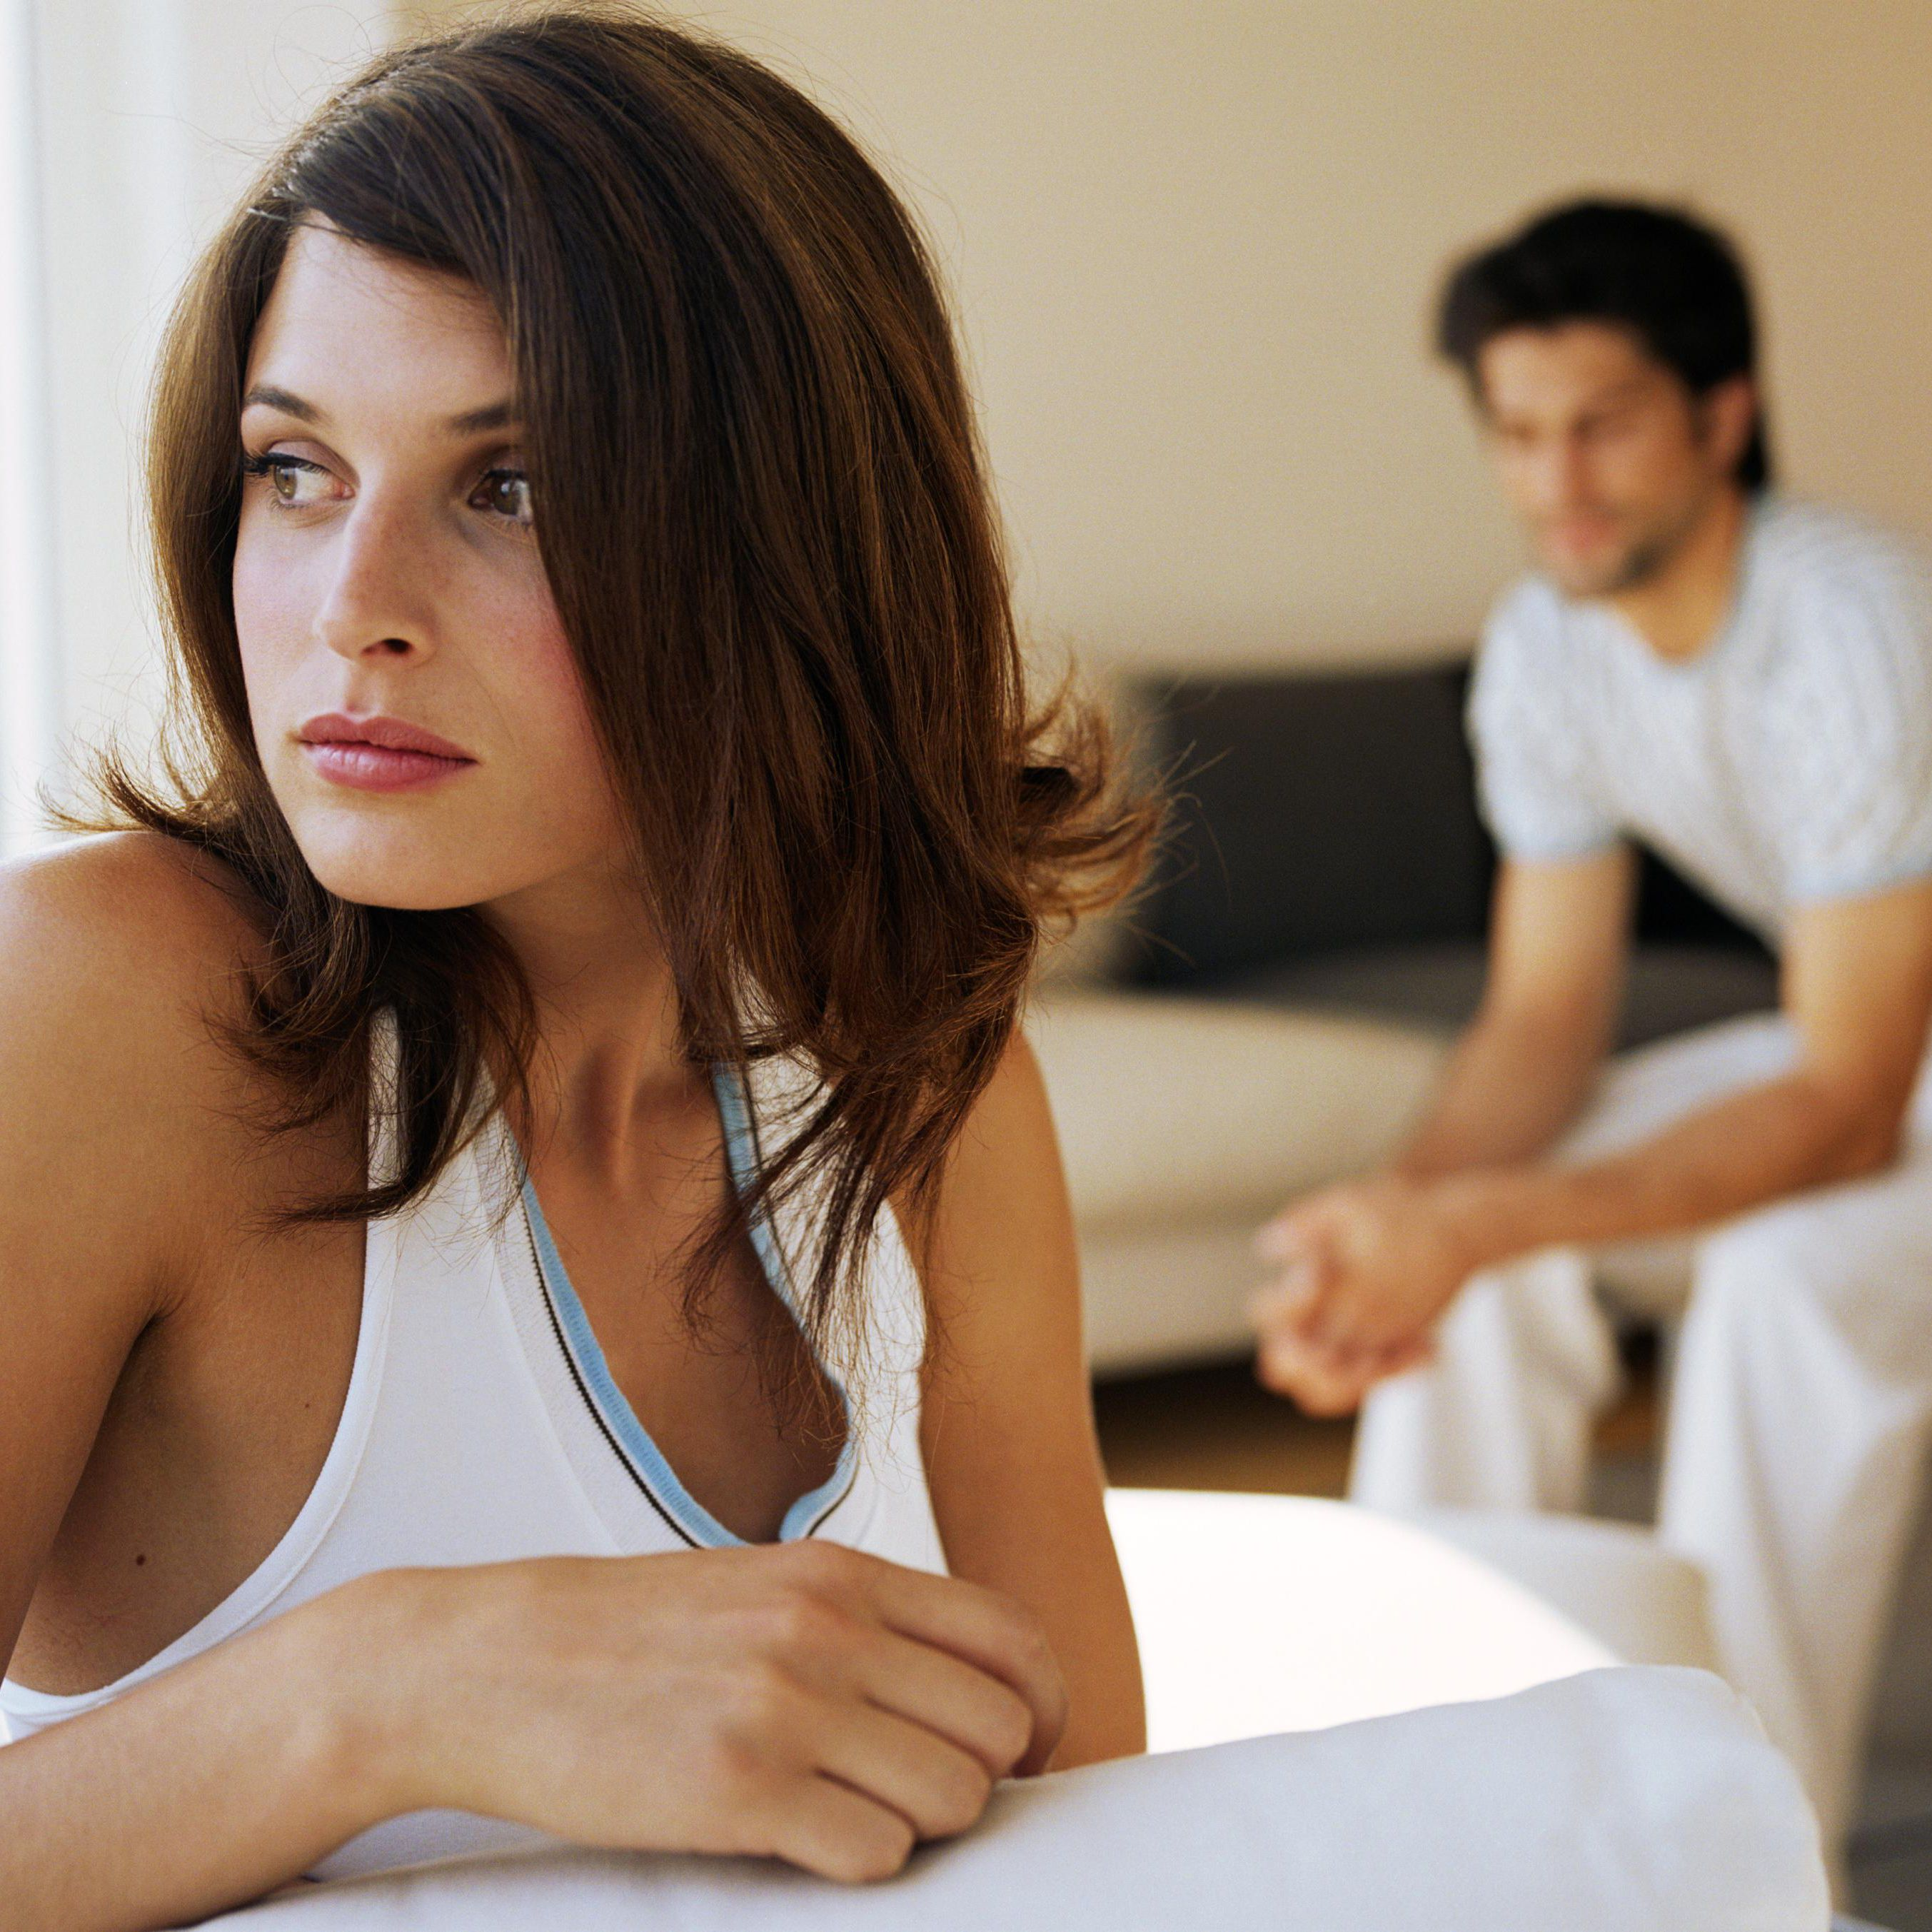 30 things to say to your wife when she is angry with you (Part 3)